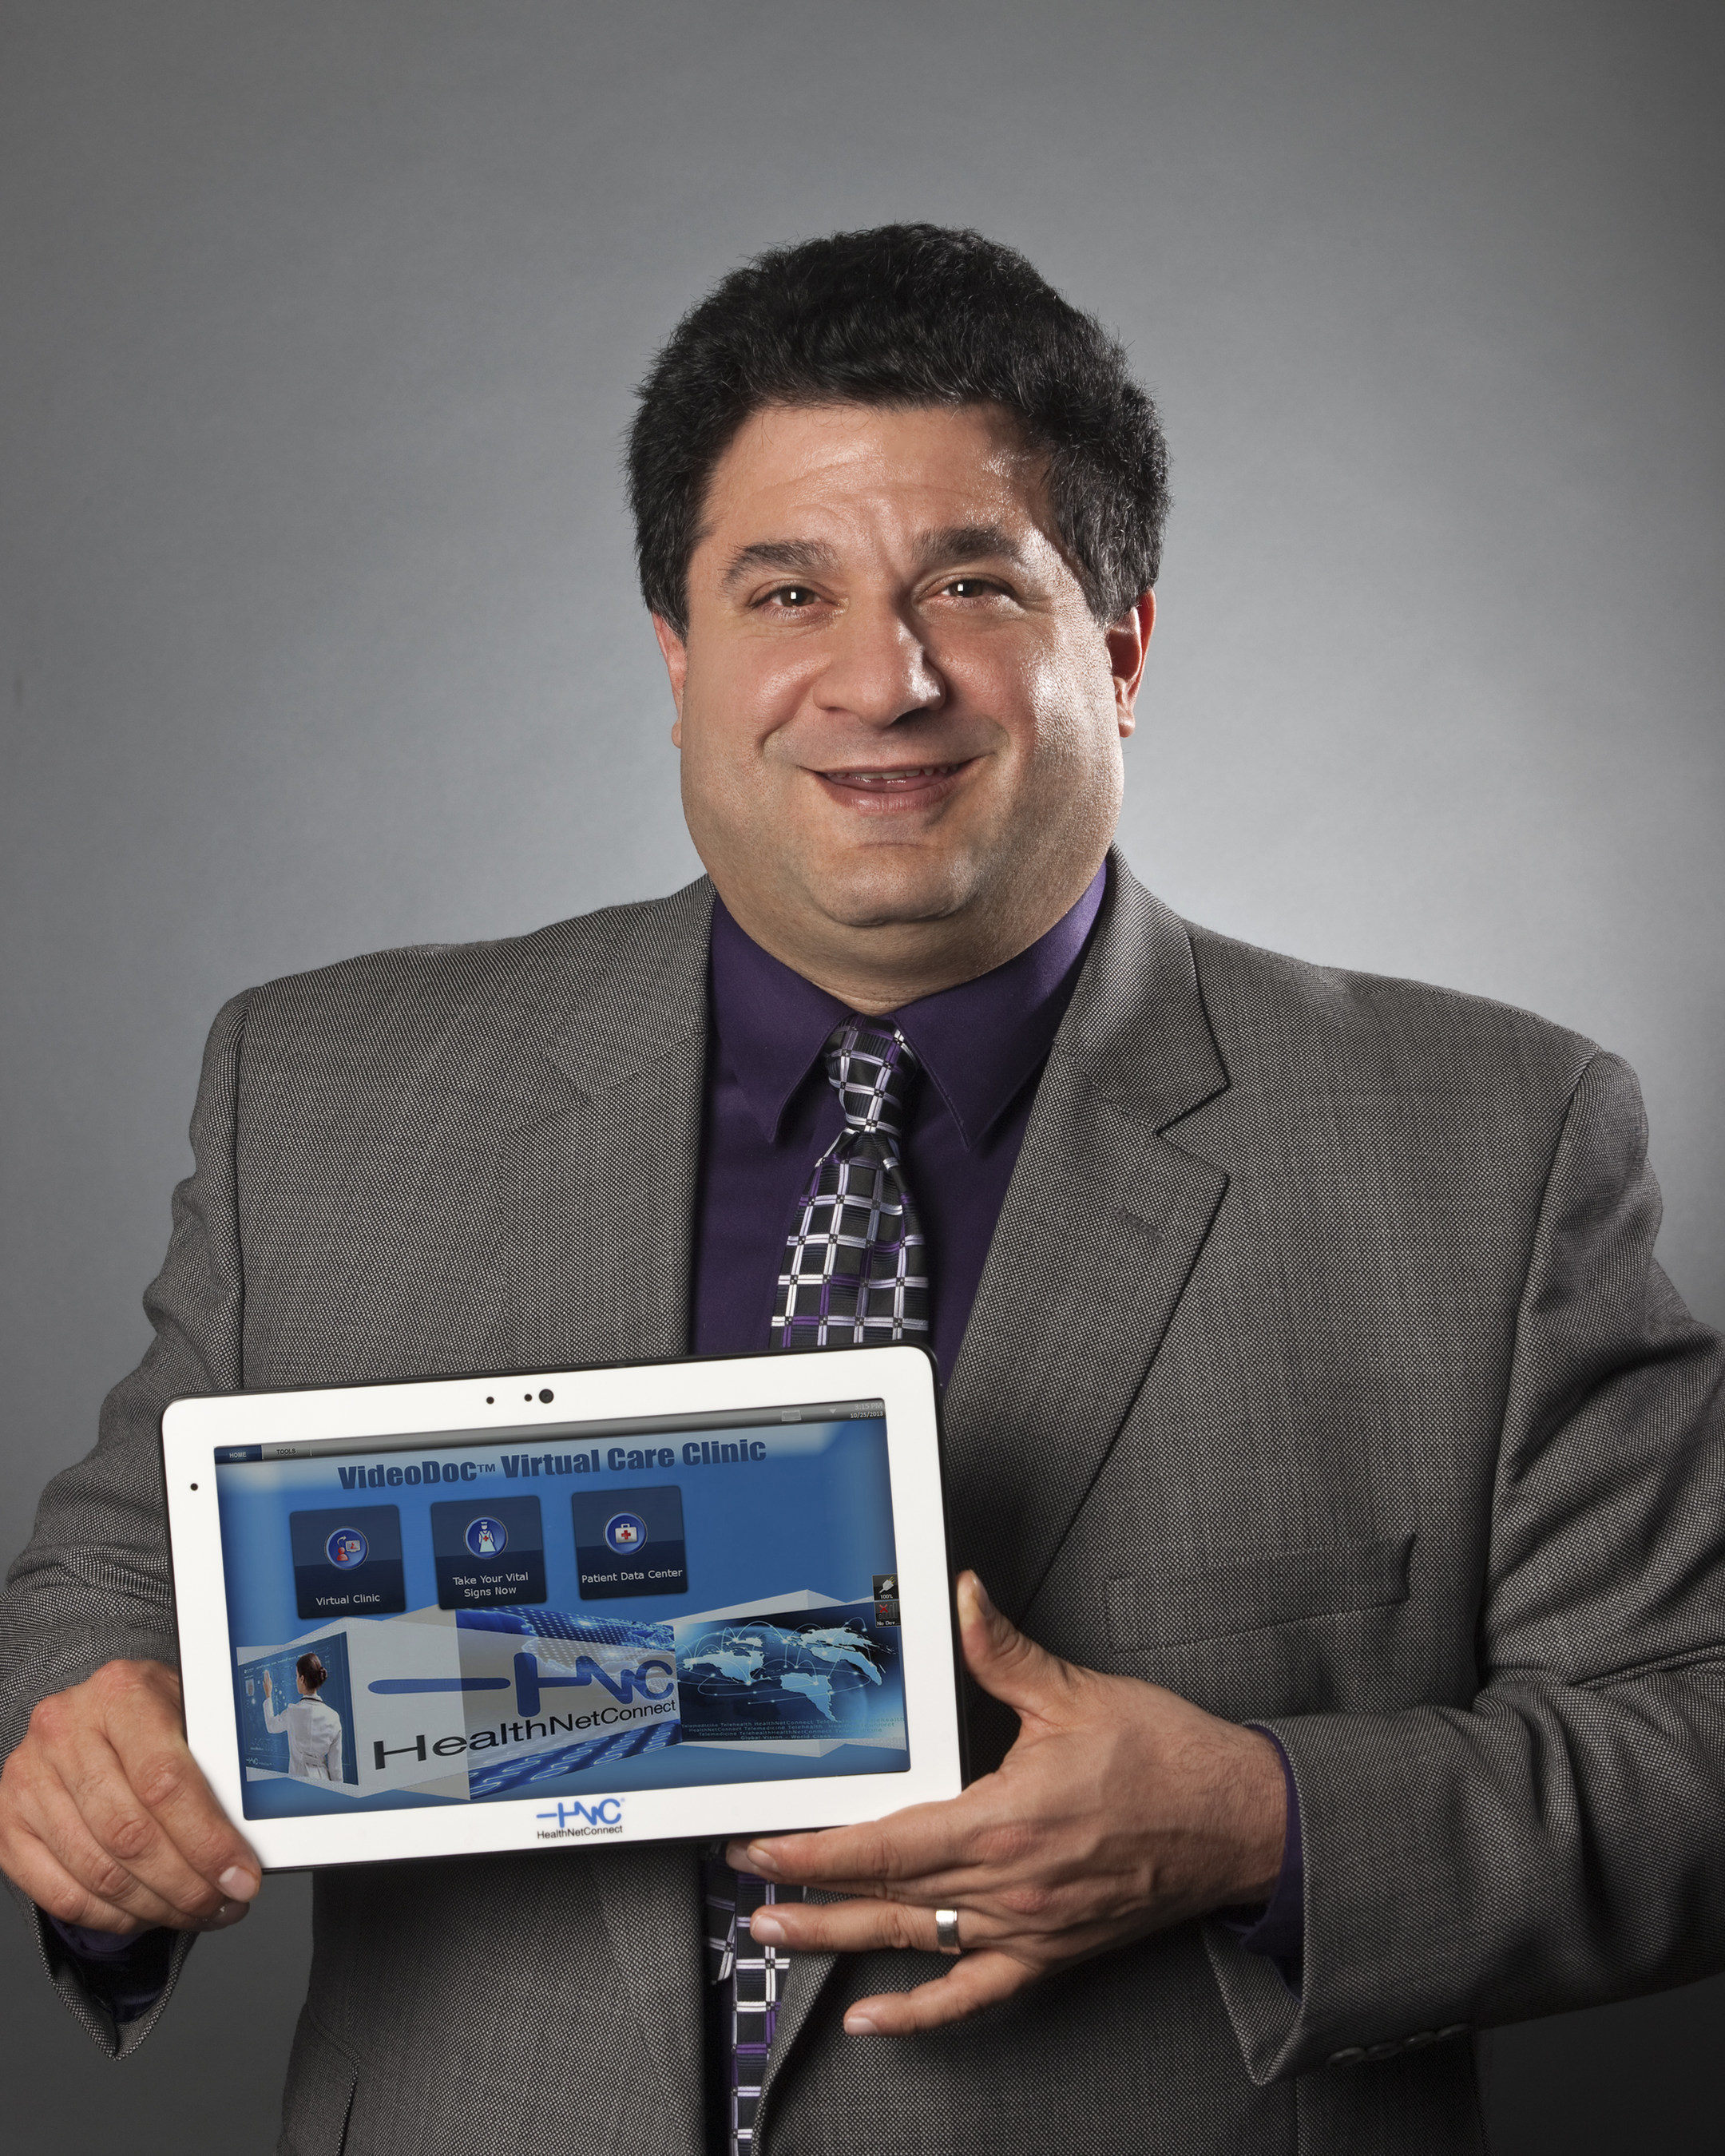 Stephen Shaya, M.D., of Health Net Connect Selected To Speak at Connecting Michigan For Health 2015